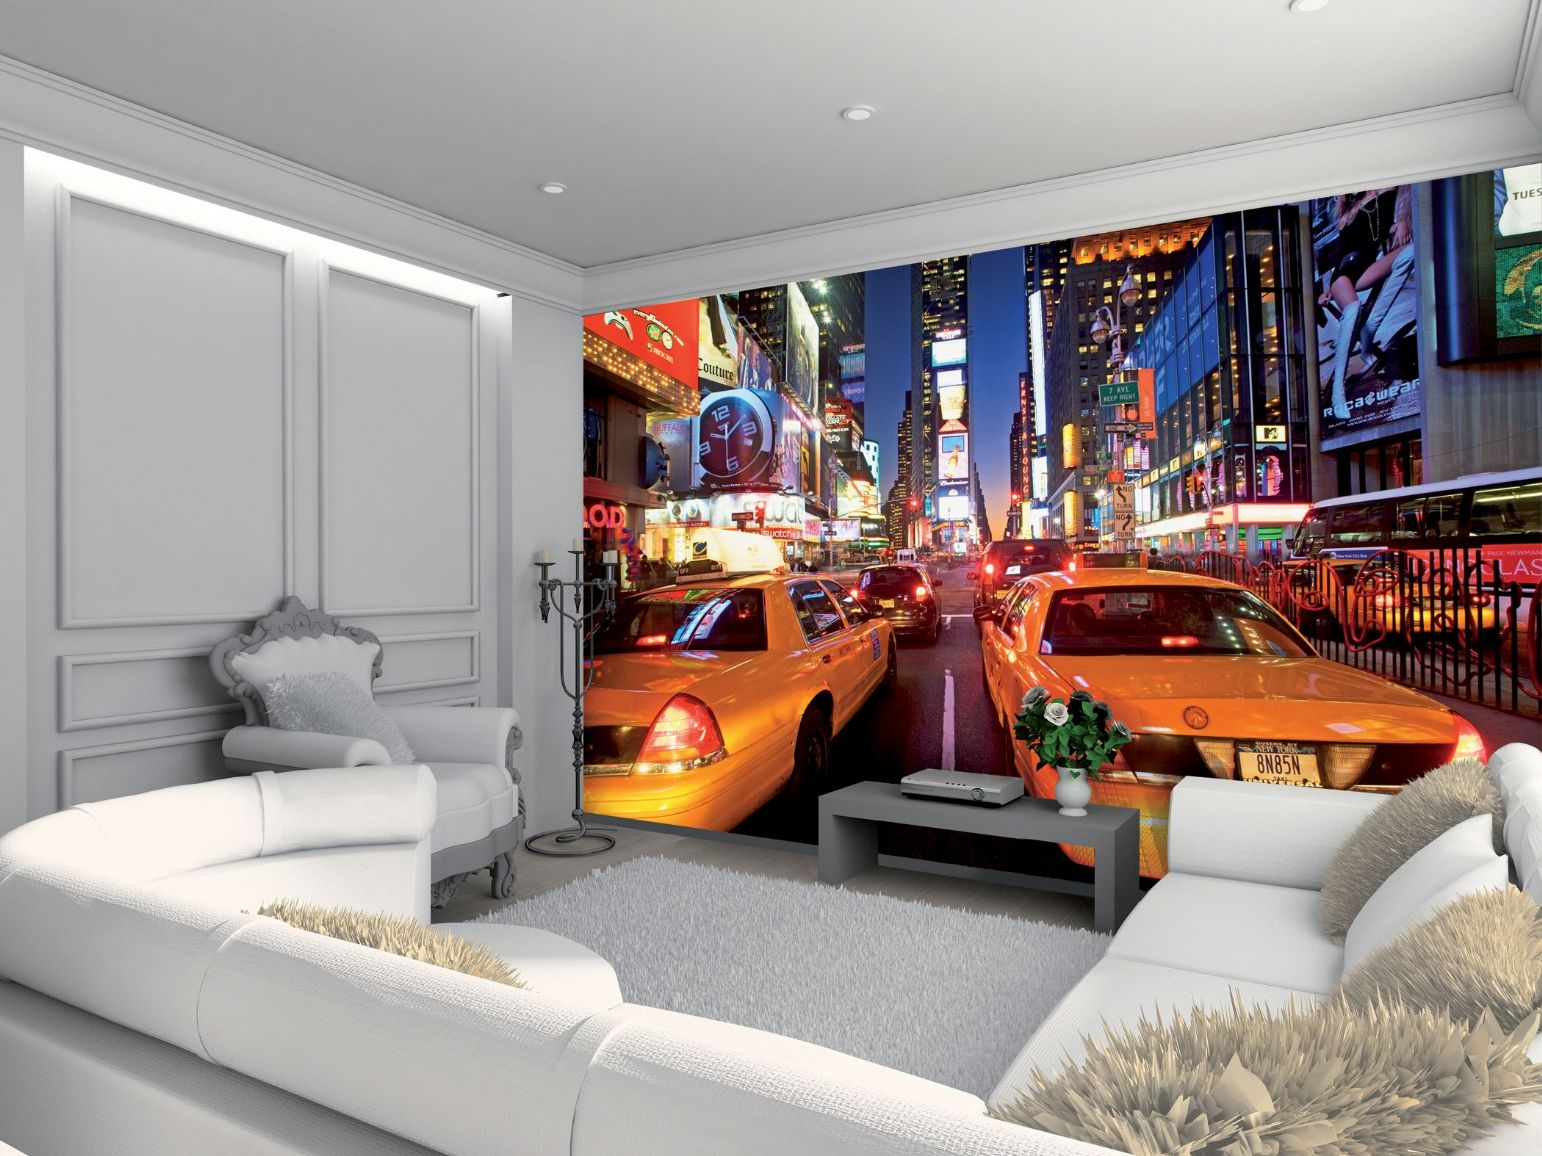 GIANT WALLPAPER WALL MURAL NEW YORK TIMES SQUARE YELLOW TAXI THEMED 1542x1156